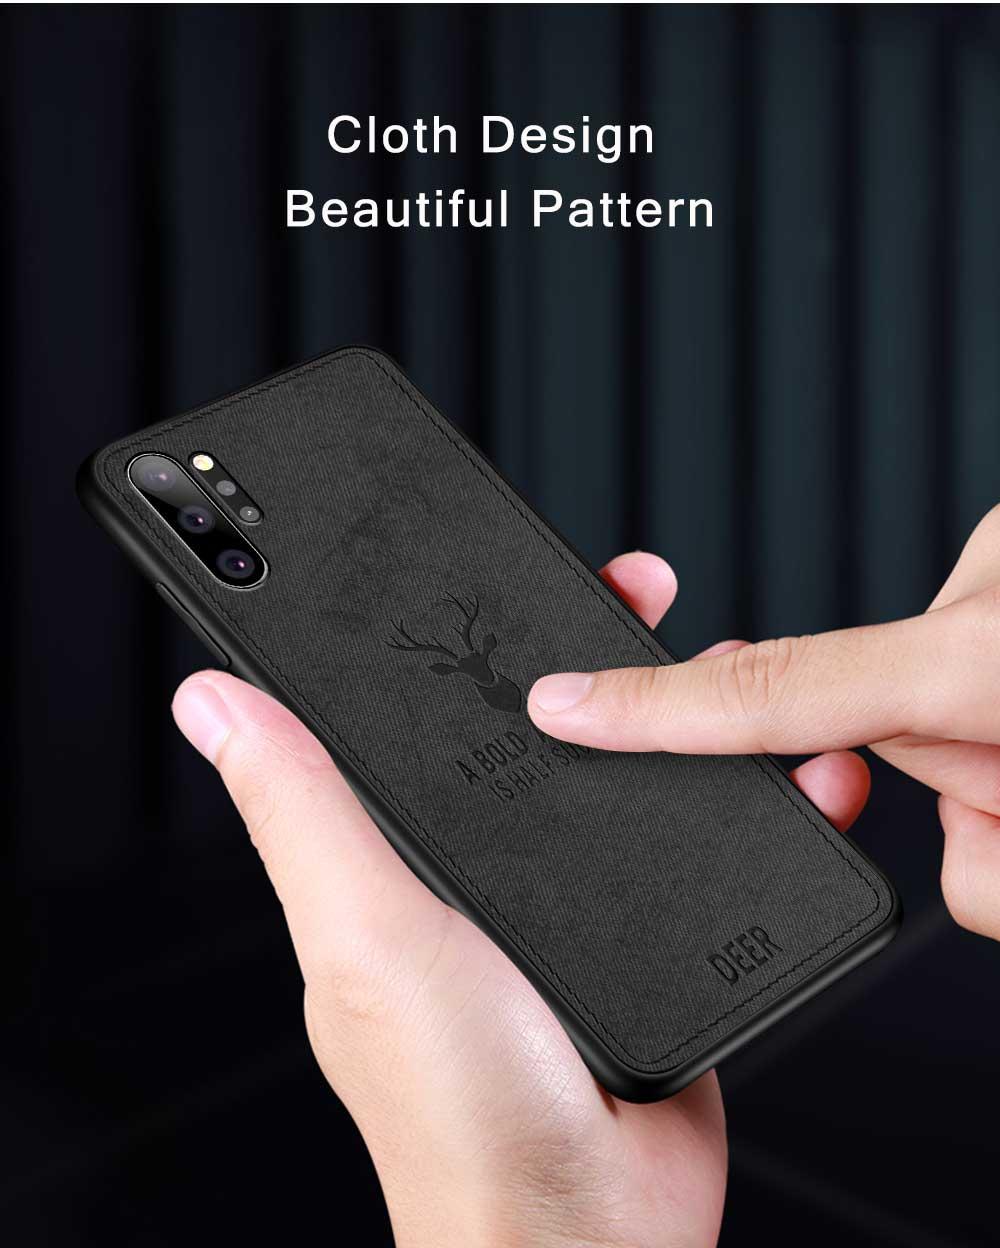 Bakeey Fabric Cloth Anti Fingerprint Protective Case For Samsung Galaxy Note 10 Plus/Note 10+ 5G